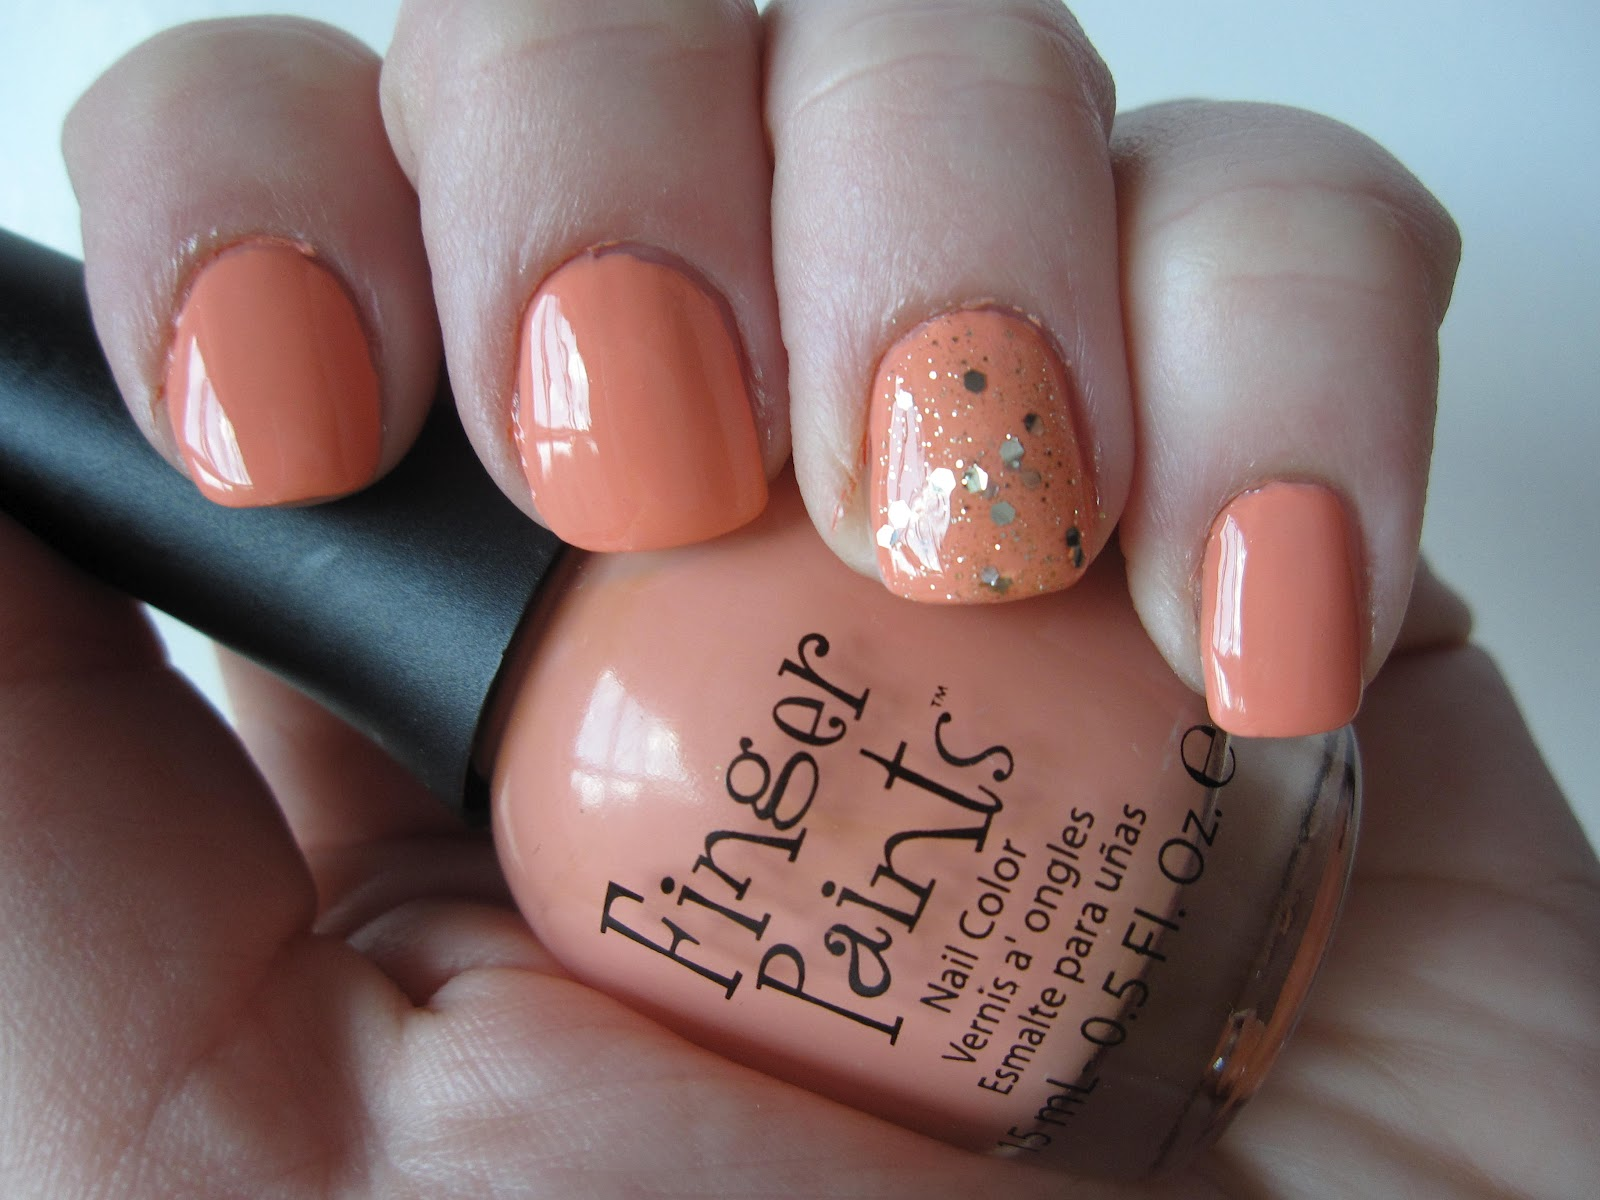 Mani: Finger Paints Circus Peanuts - At the Pink of Perfection